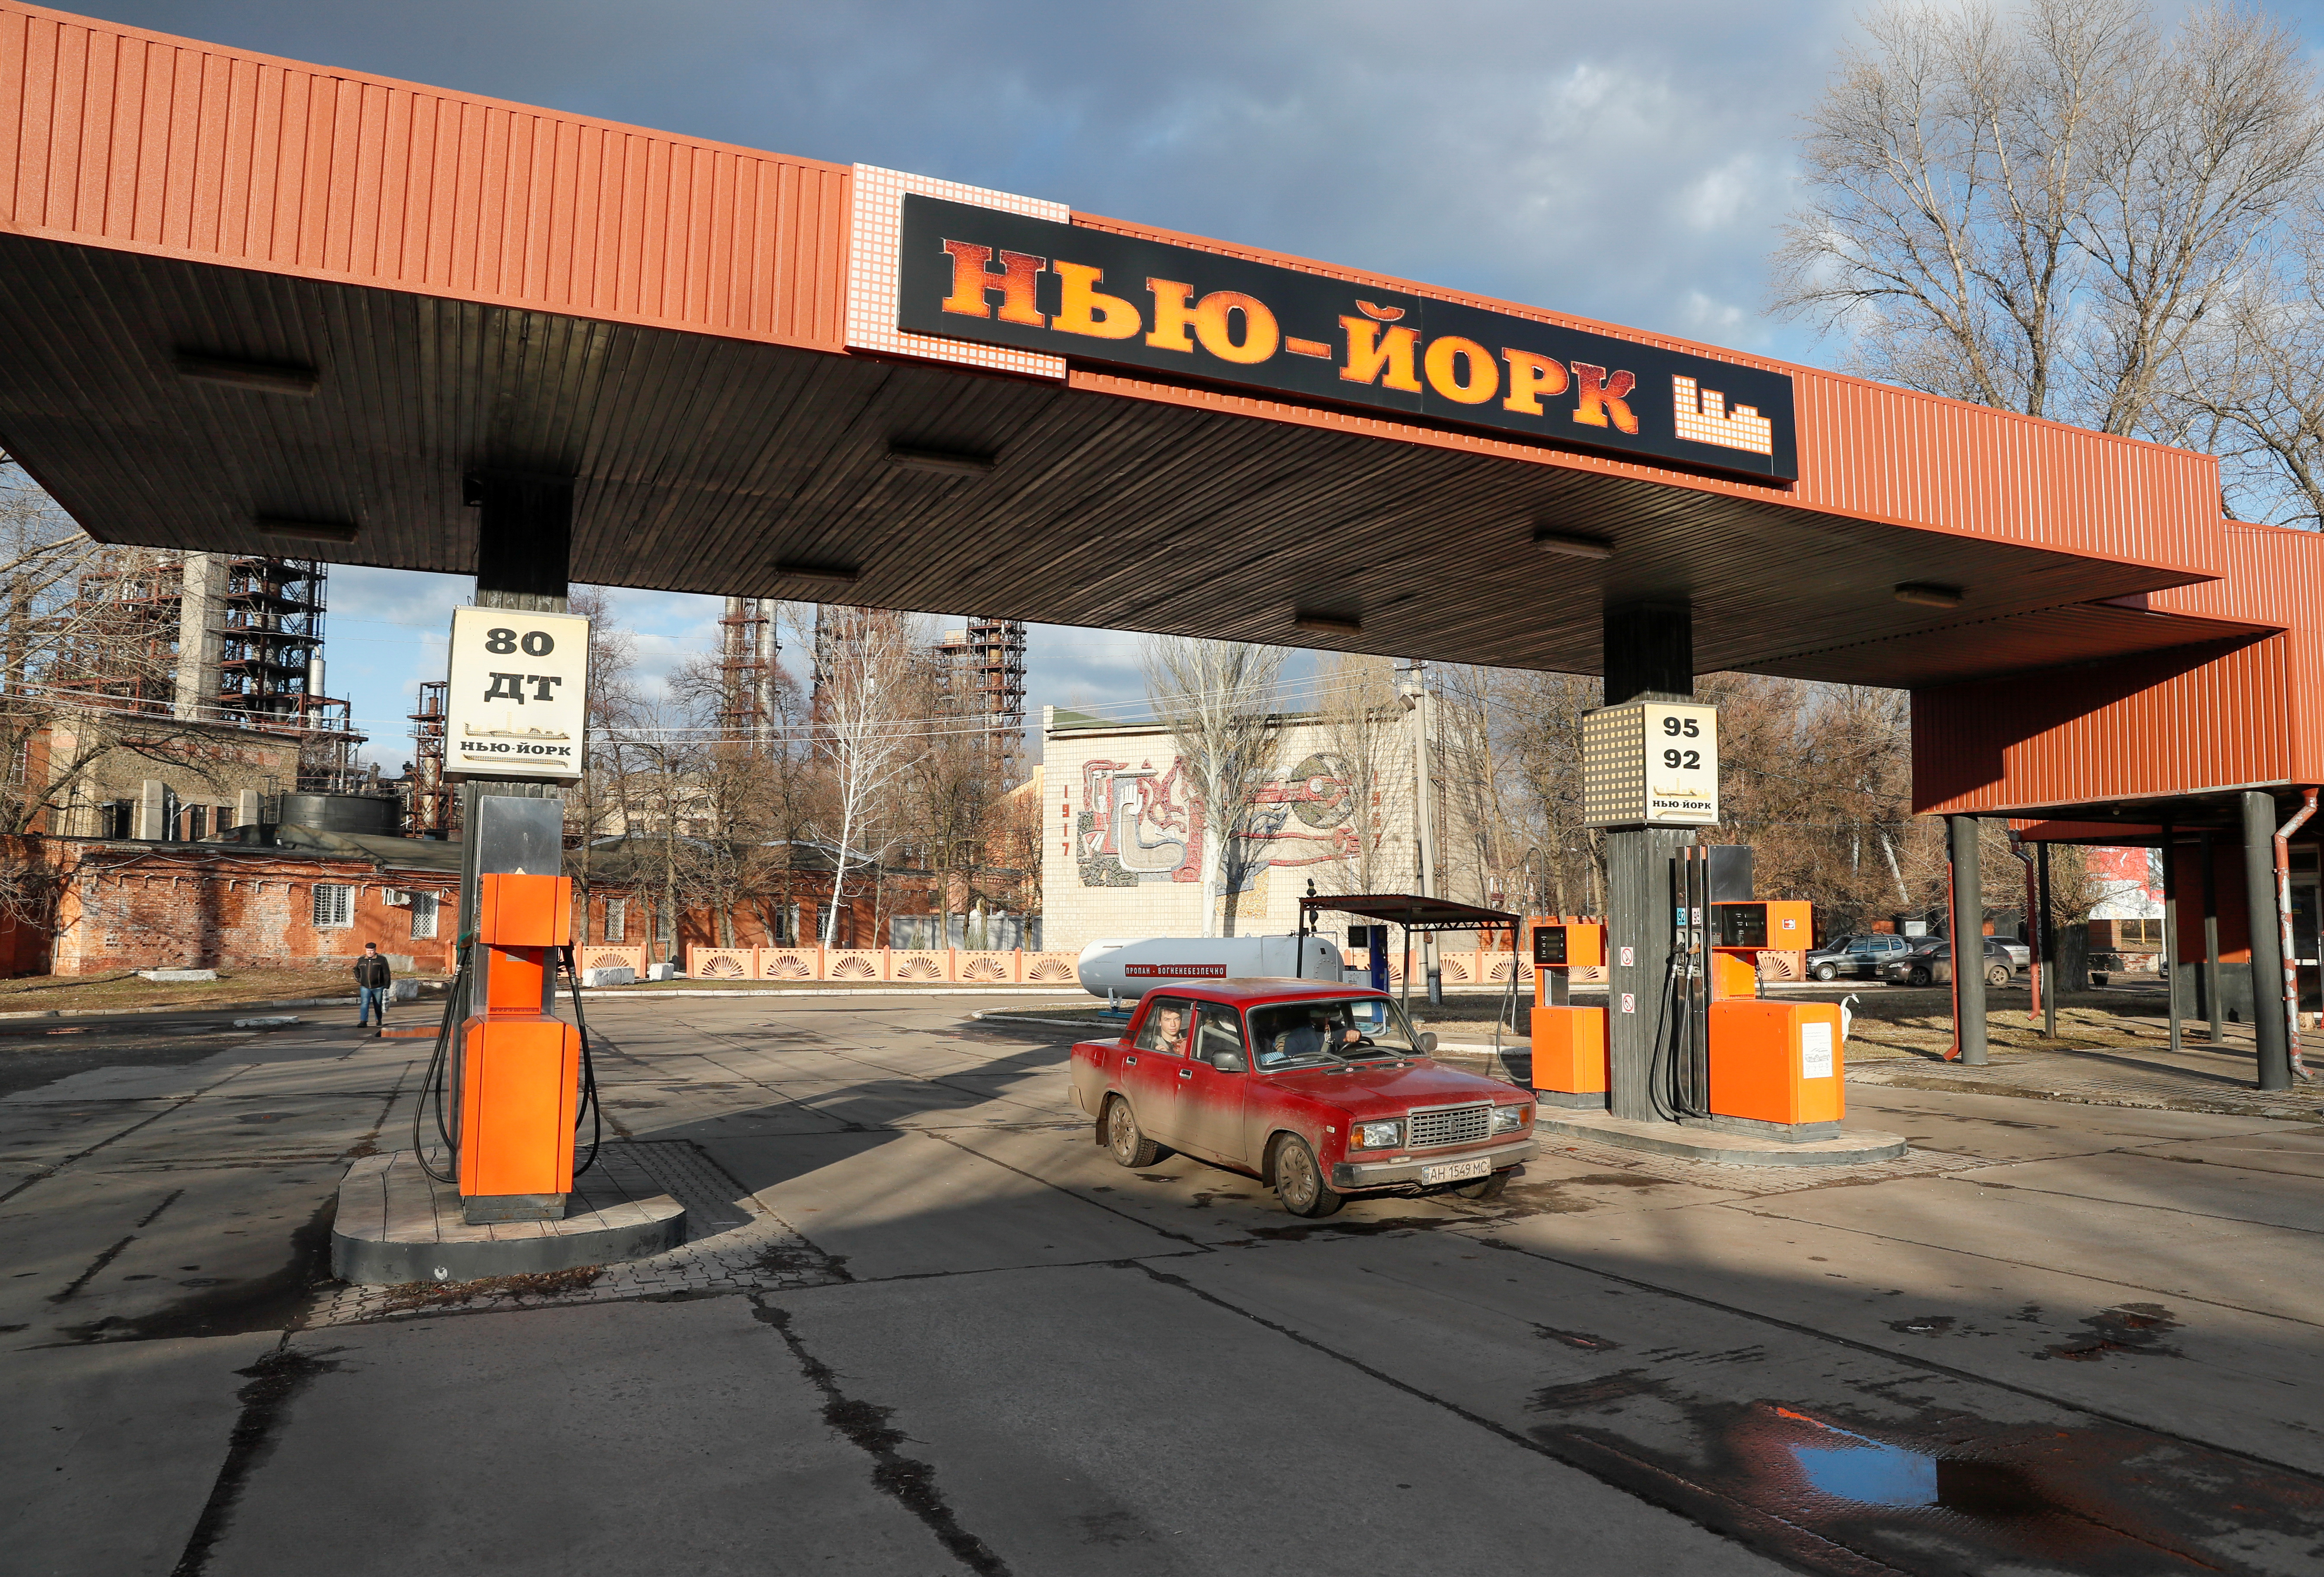 A view shows a petrol station, which bears the name of New York, in the town of Novhorodske in Donetsk Region, Ukraine March 3, 2021. Picture taken March 3, 2021. REUTERS/Gleb Garanich